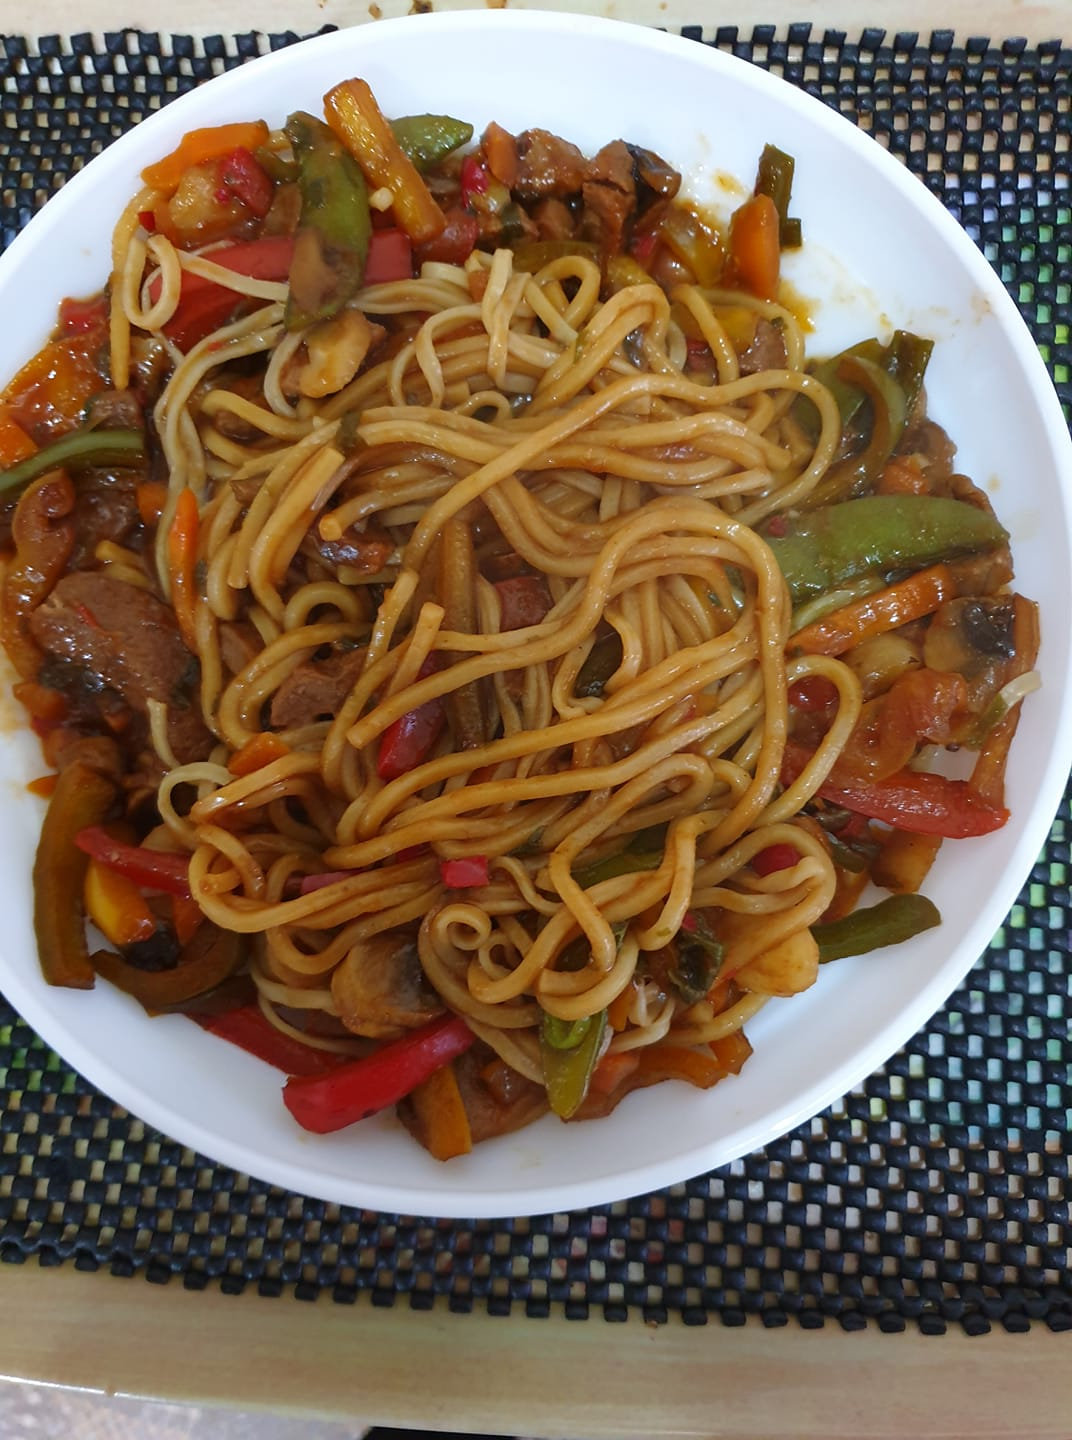 Main meal of Korean style noodles with extra stir fry vegetables.